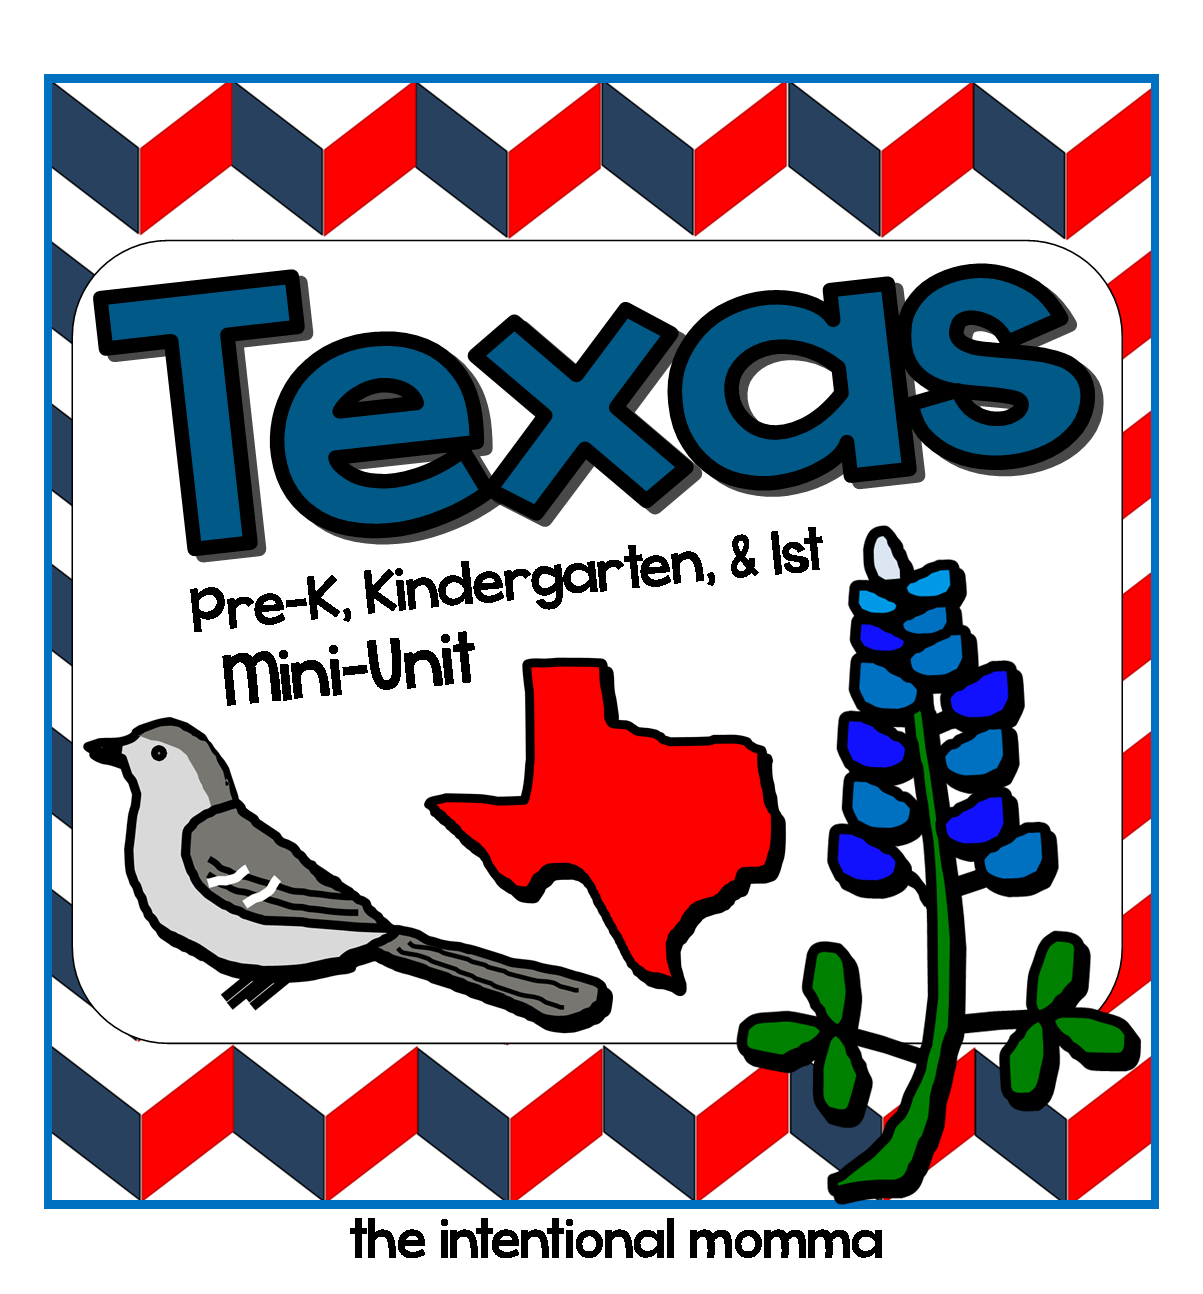 Texas history month printable worksheets and miniunit perfect – Pre K Kindergarten Worksheets